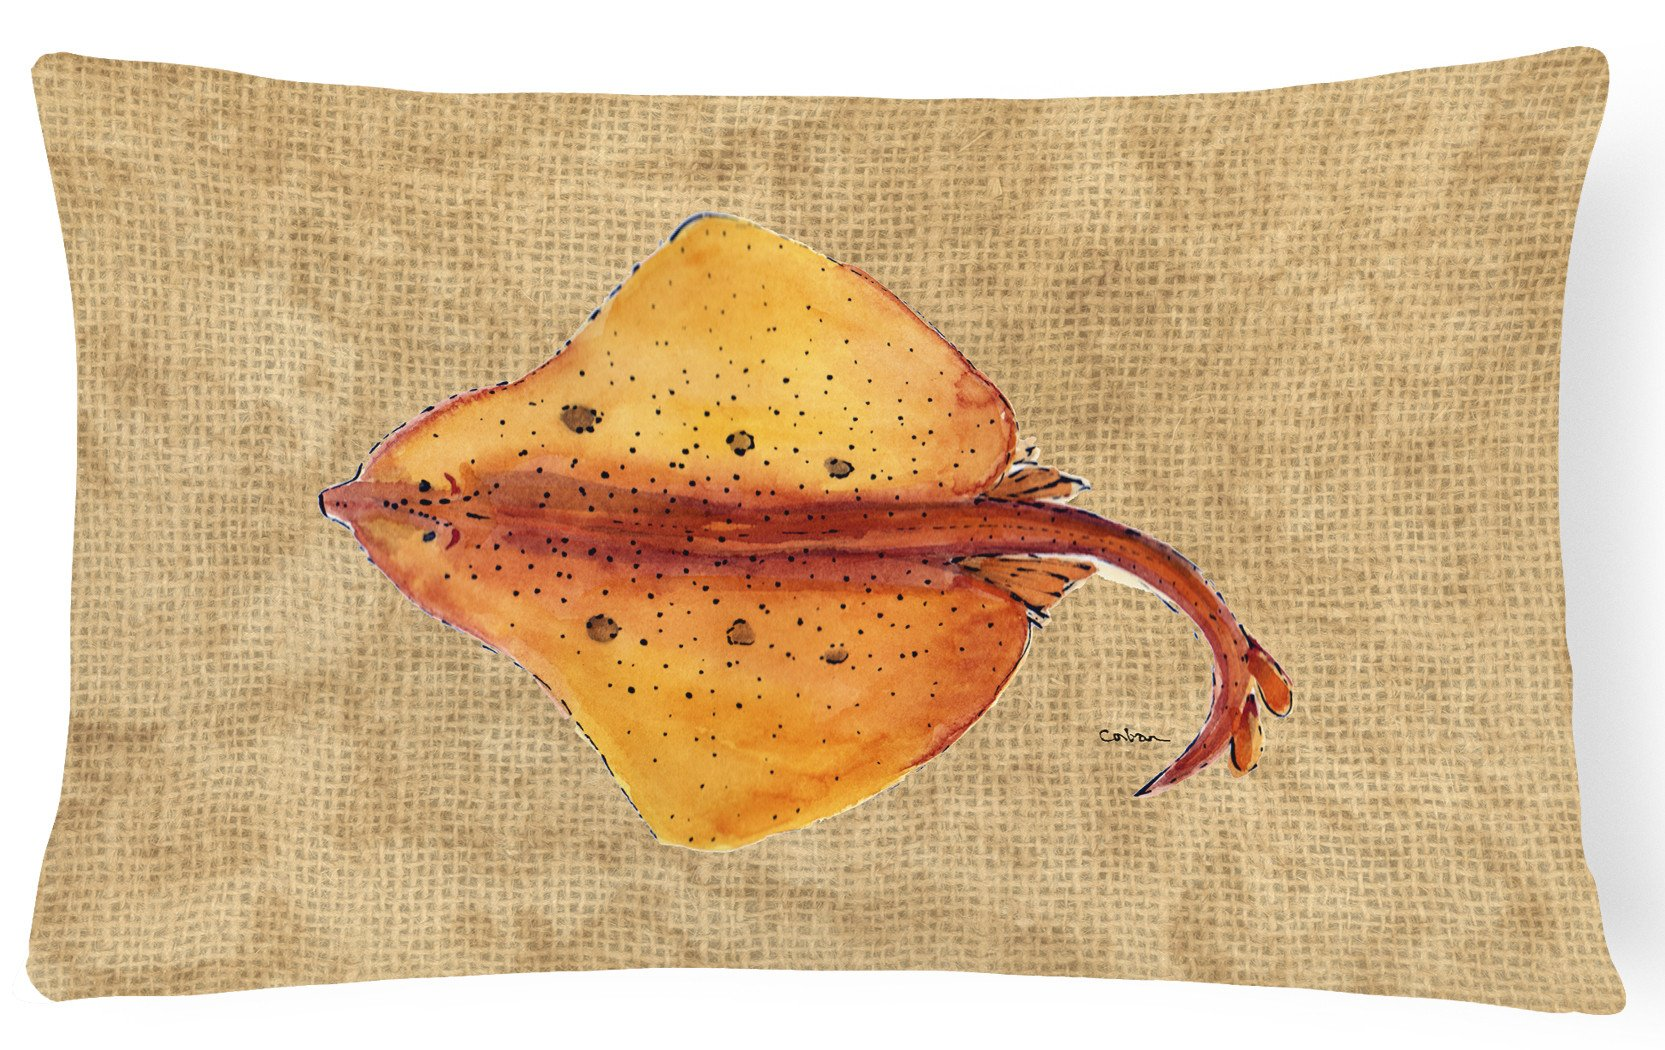 Blonde Ray Stingray   Canvas Fabric Decorative Pillow by Caroline's Treasures